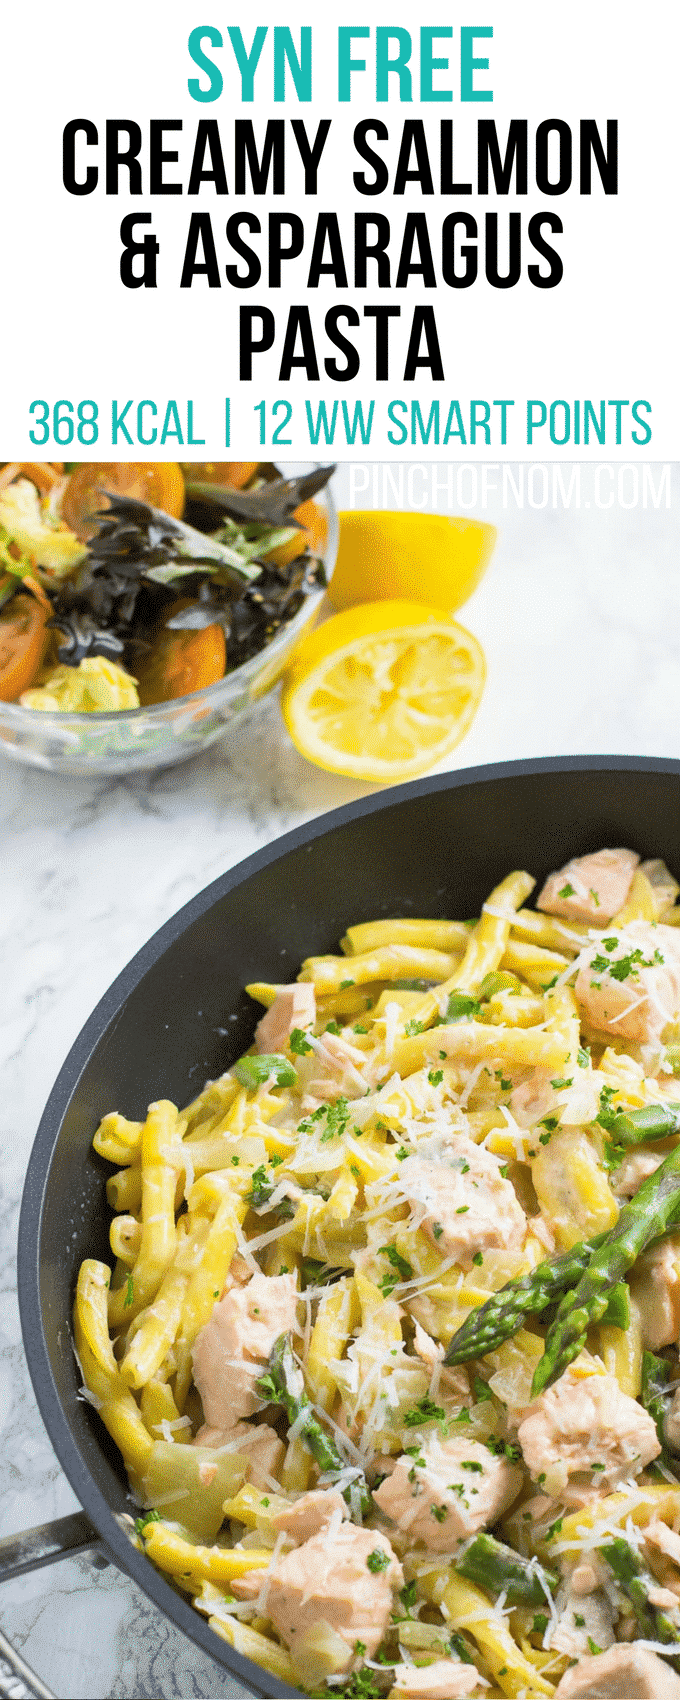 Syn Free Creamy Salmon Pasta | Syn free Slimming World | 16 Weight Watchers Smart Points | 368Kcal | pinchofnom.com